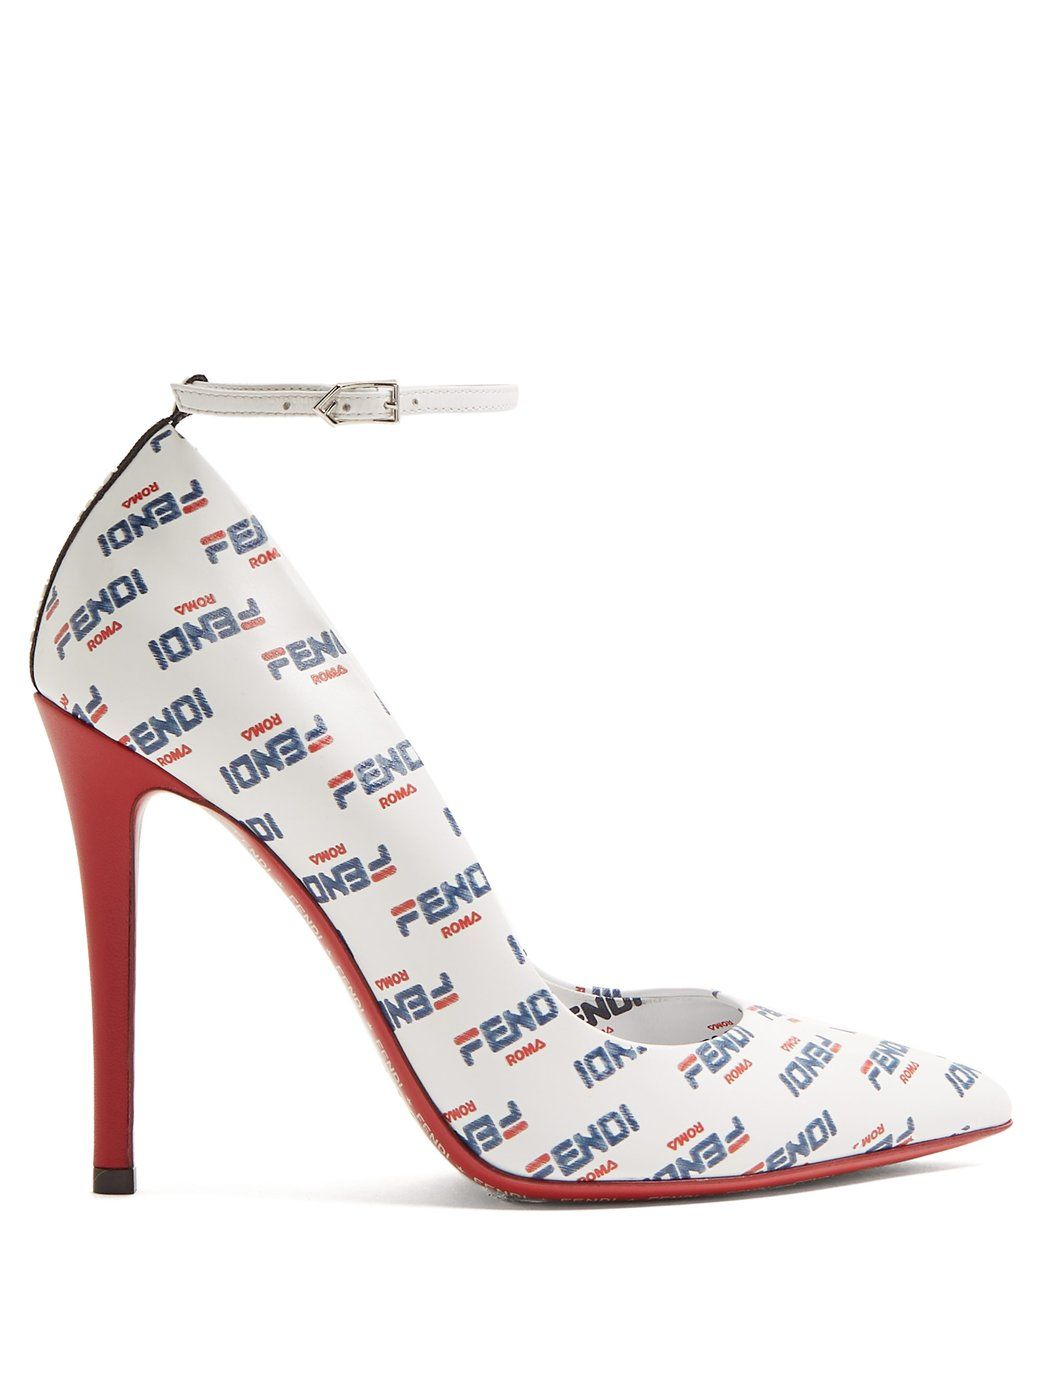 fendi-mania-logo-print-leather-pumps